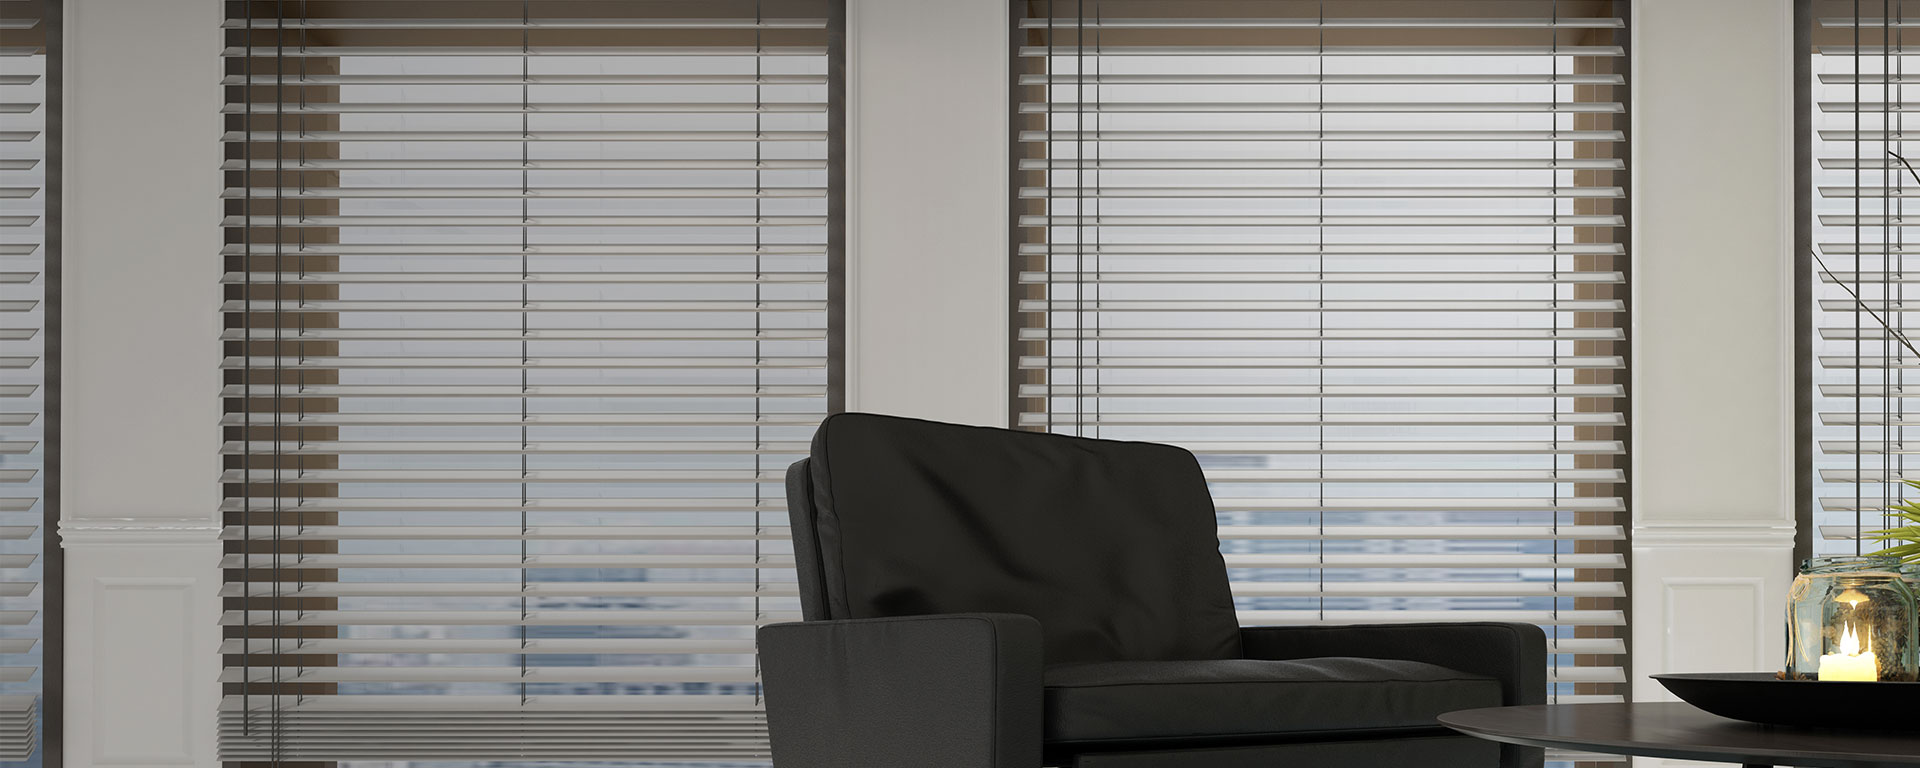 Window Coverings Blinds Shades Shutters Hd Supply